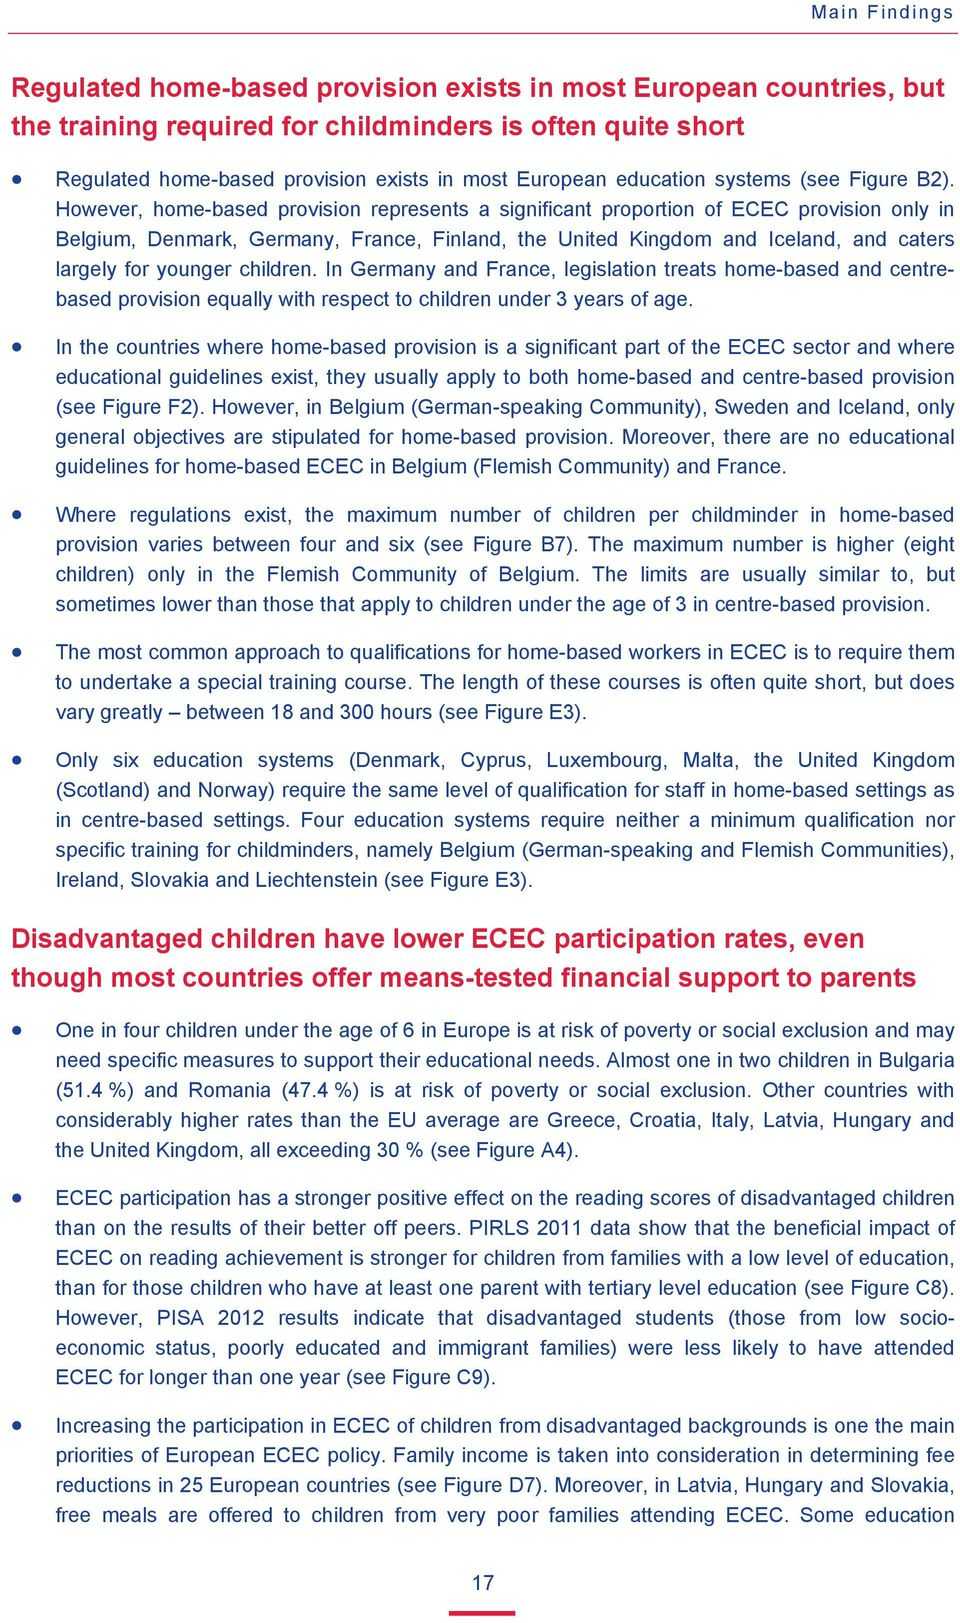 However, home-based provision represents a significant proportion of ECEC provision only in Belgium, Denmark, Germany, France, Finland, the United Kingdom and Iceland, and caters largely for younger